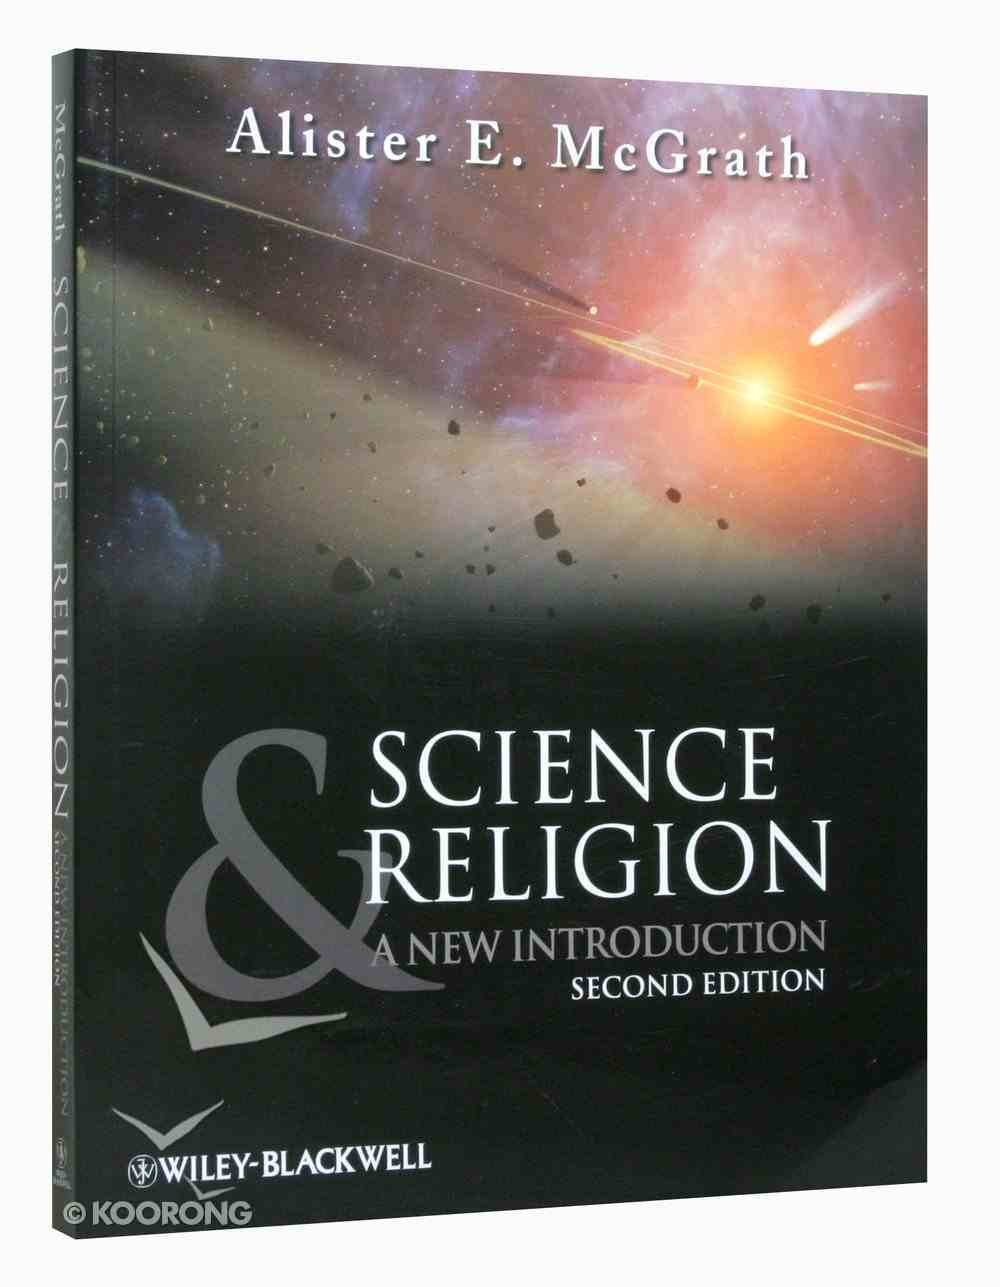 Science and Religion: An Introduction (2nd Ed) Paperback